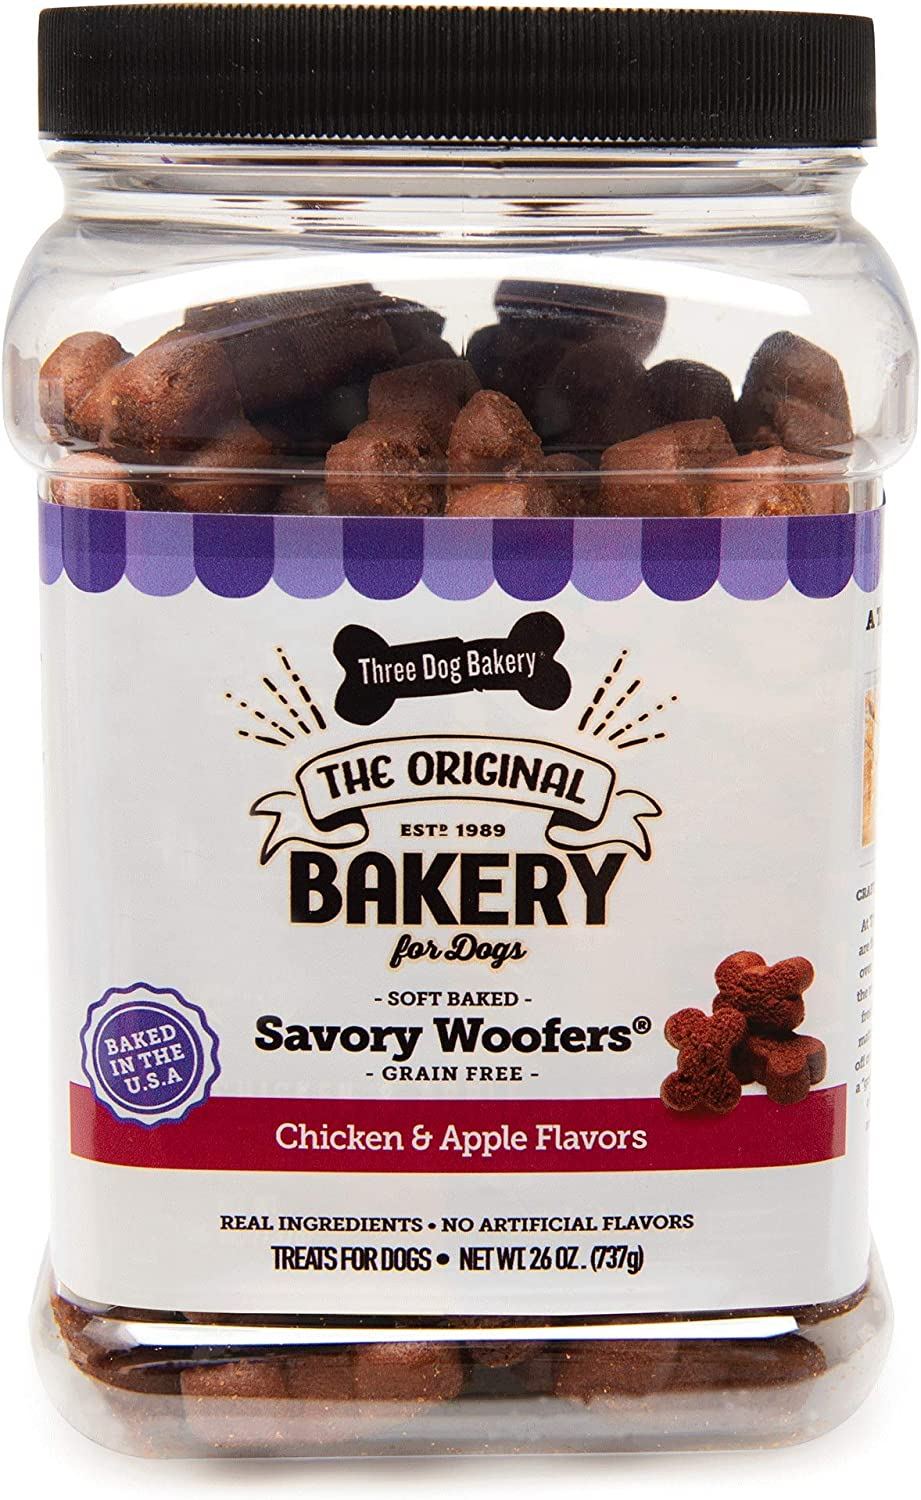 Three Dog Bakery Grain Free Max 79% OFF Soft For Meaty Sale SALE% OFF Dogs Wafers Baked 26